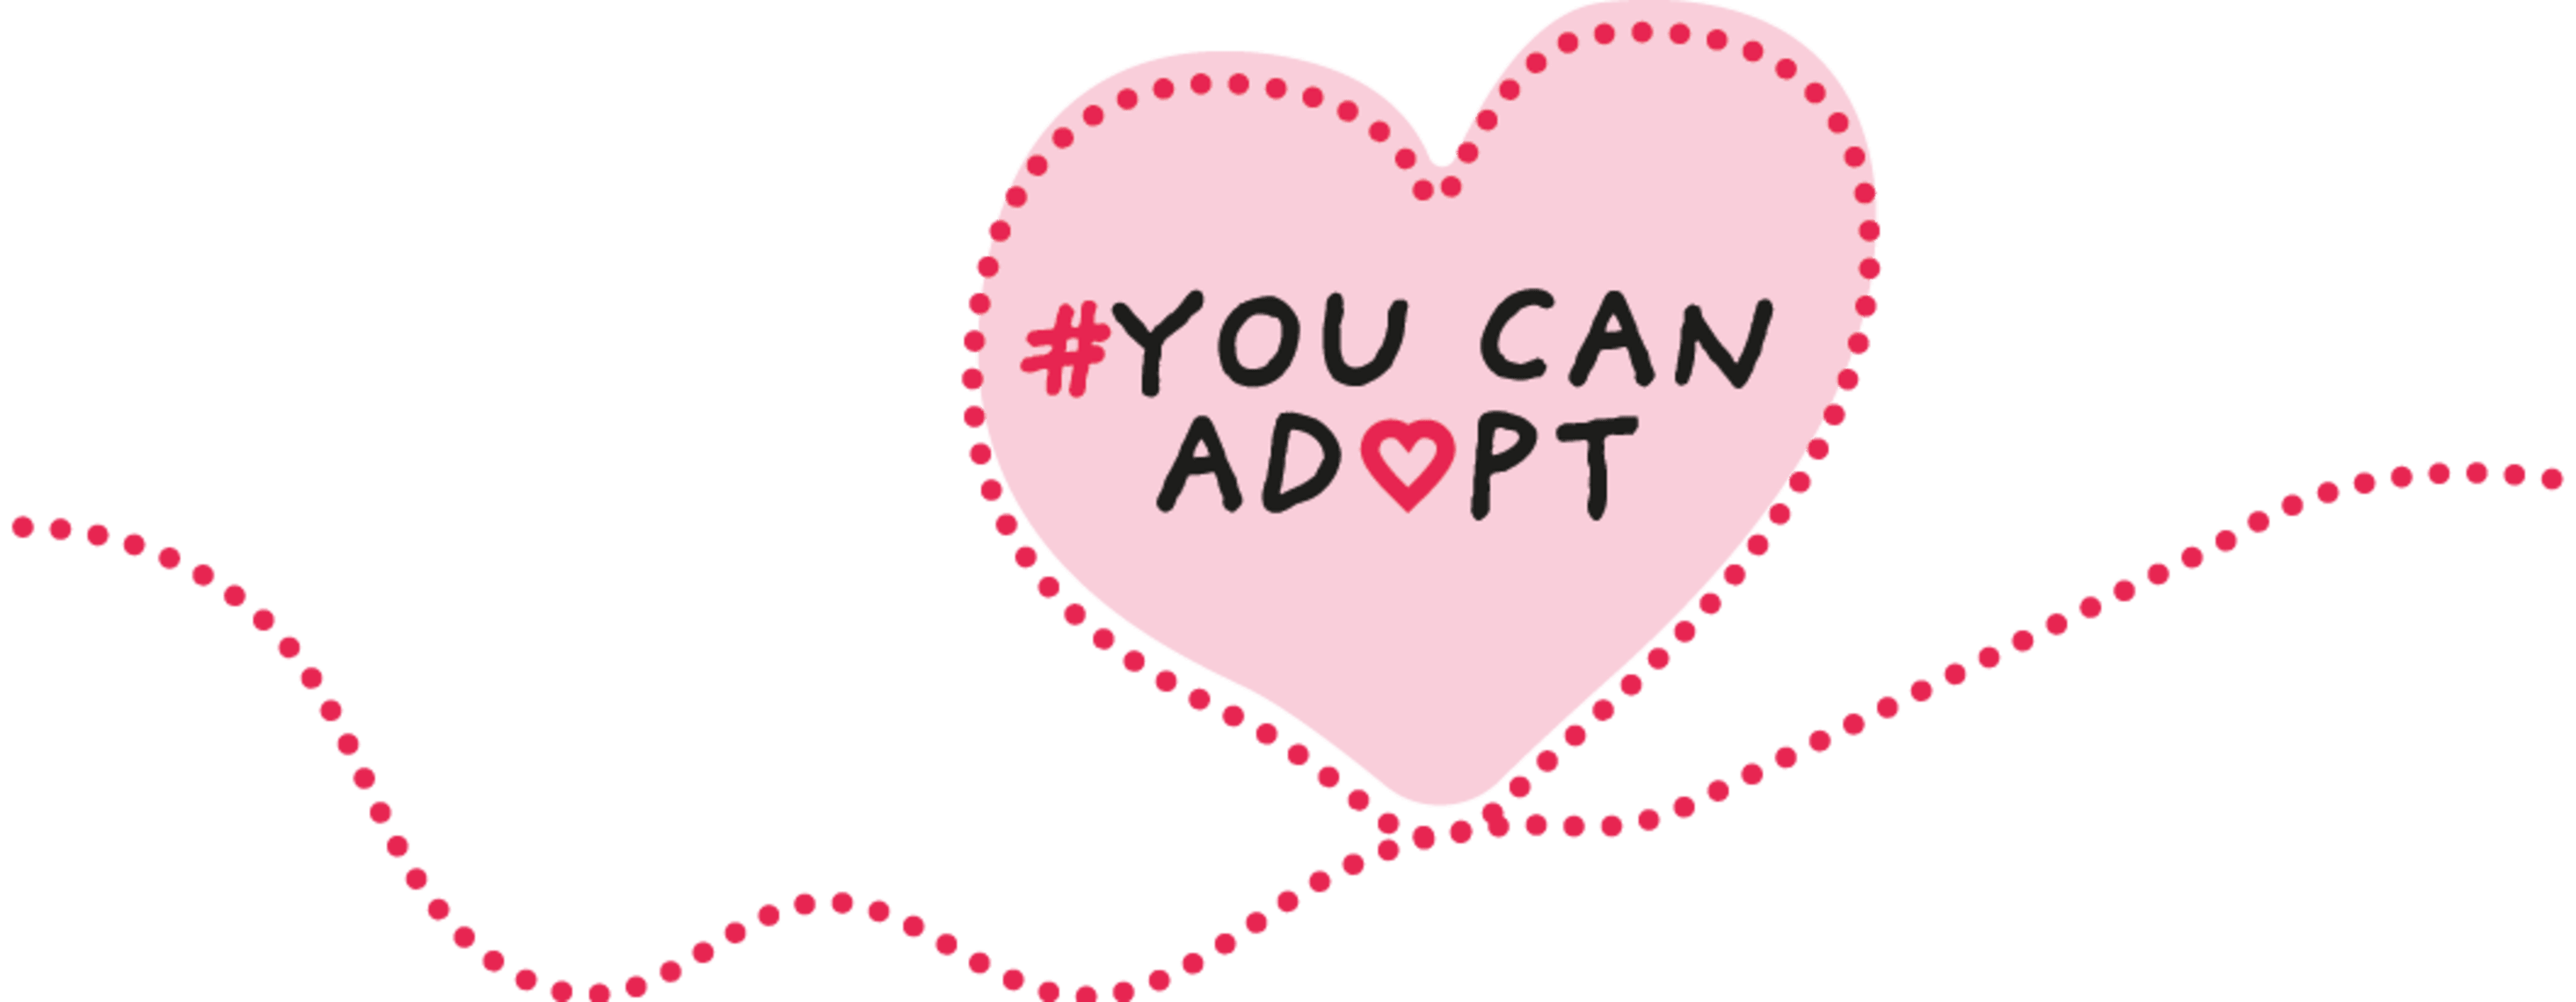 you-can-adopt